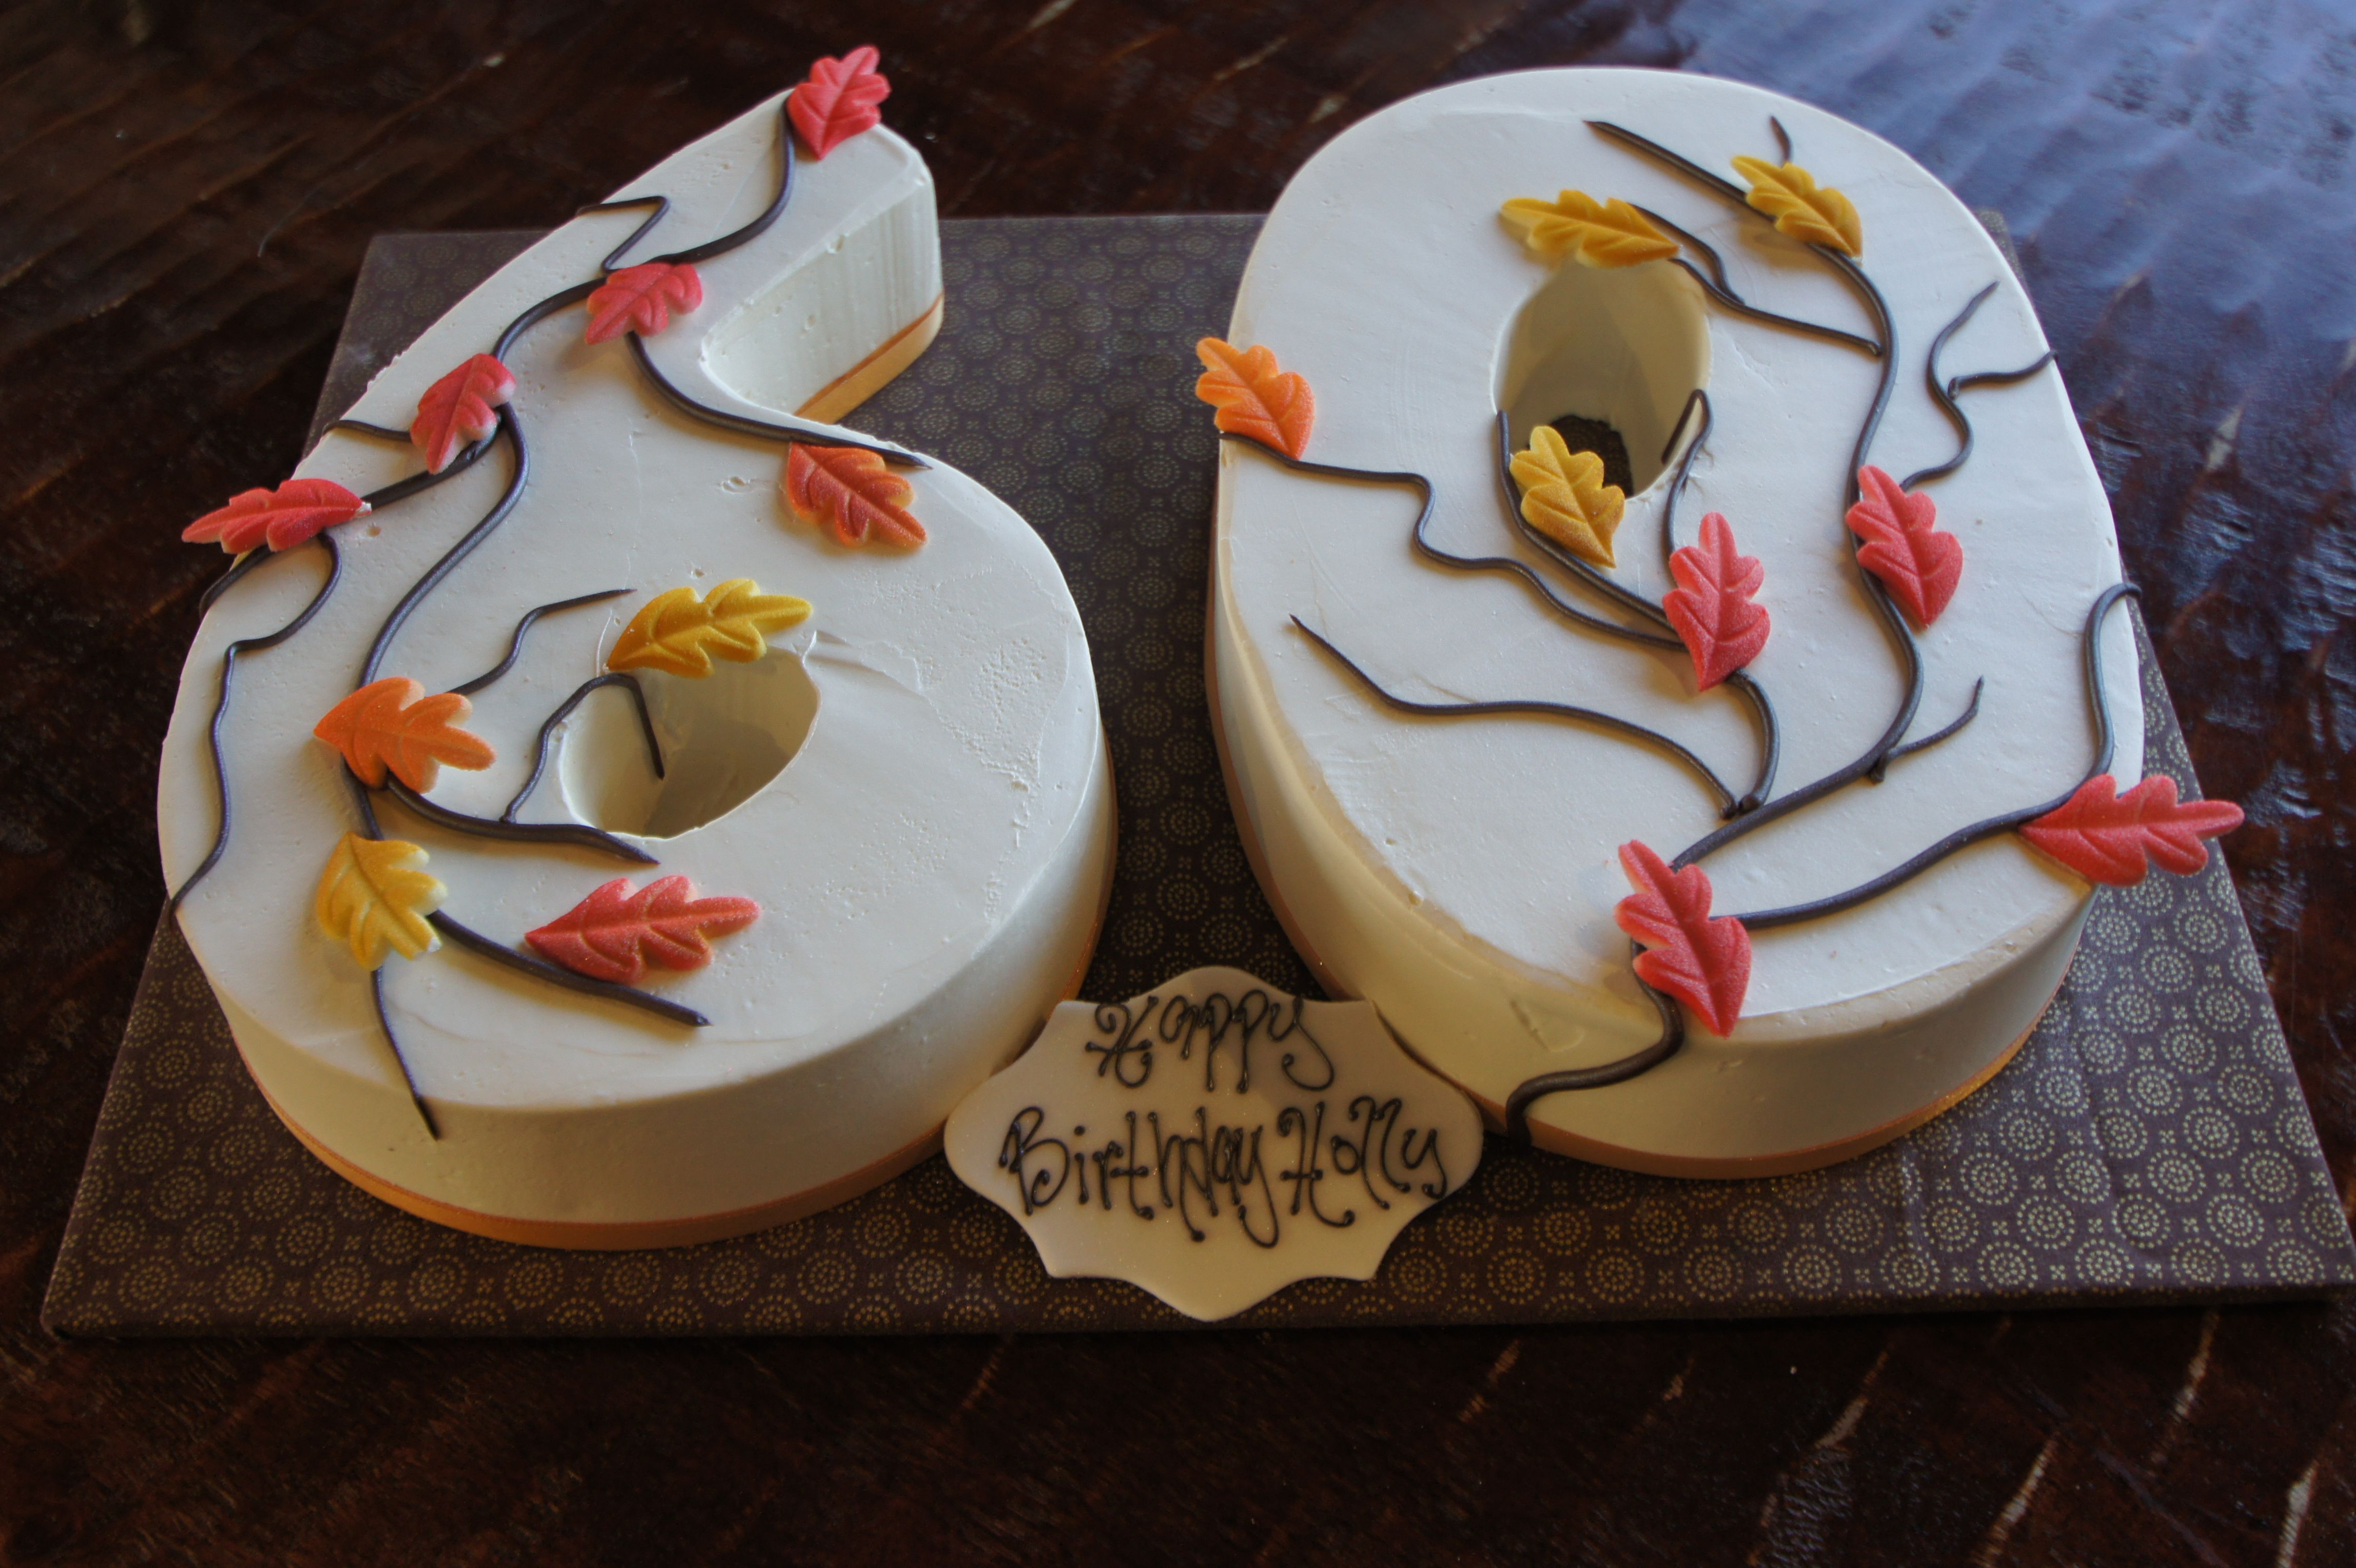 Number 60 Shaped Birthday Cakes With Fall Leaves Design